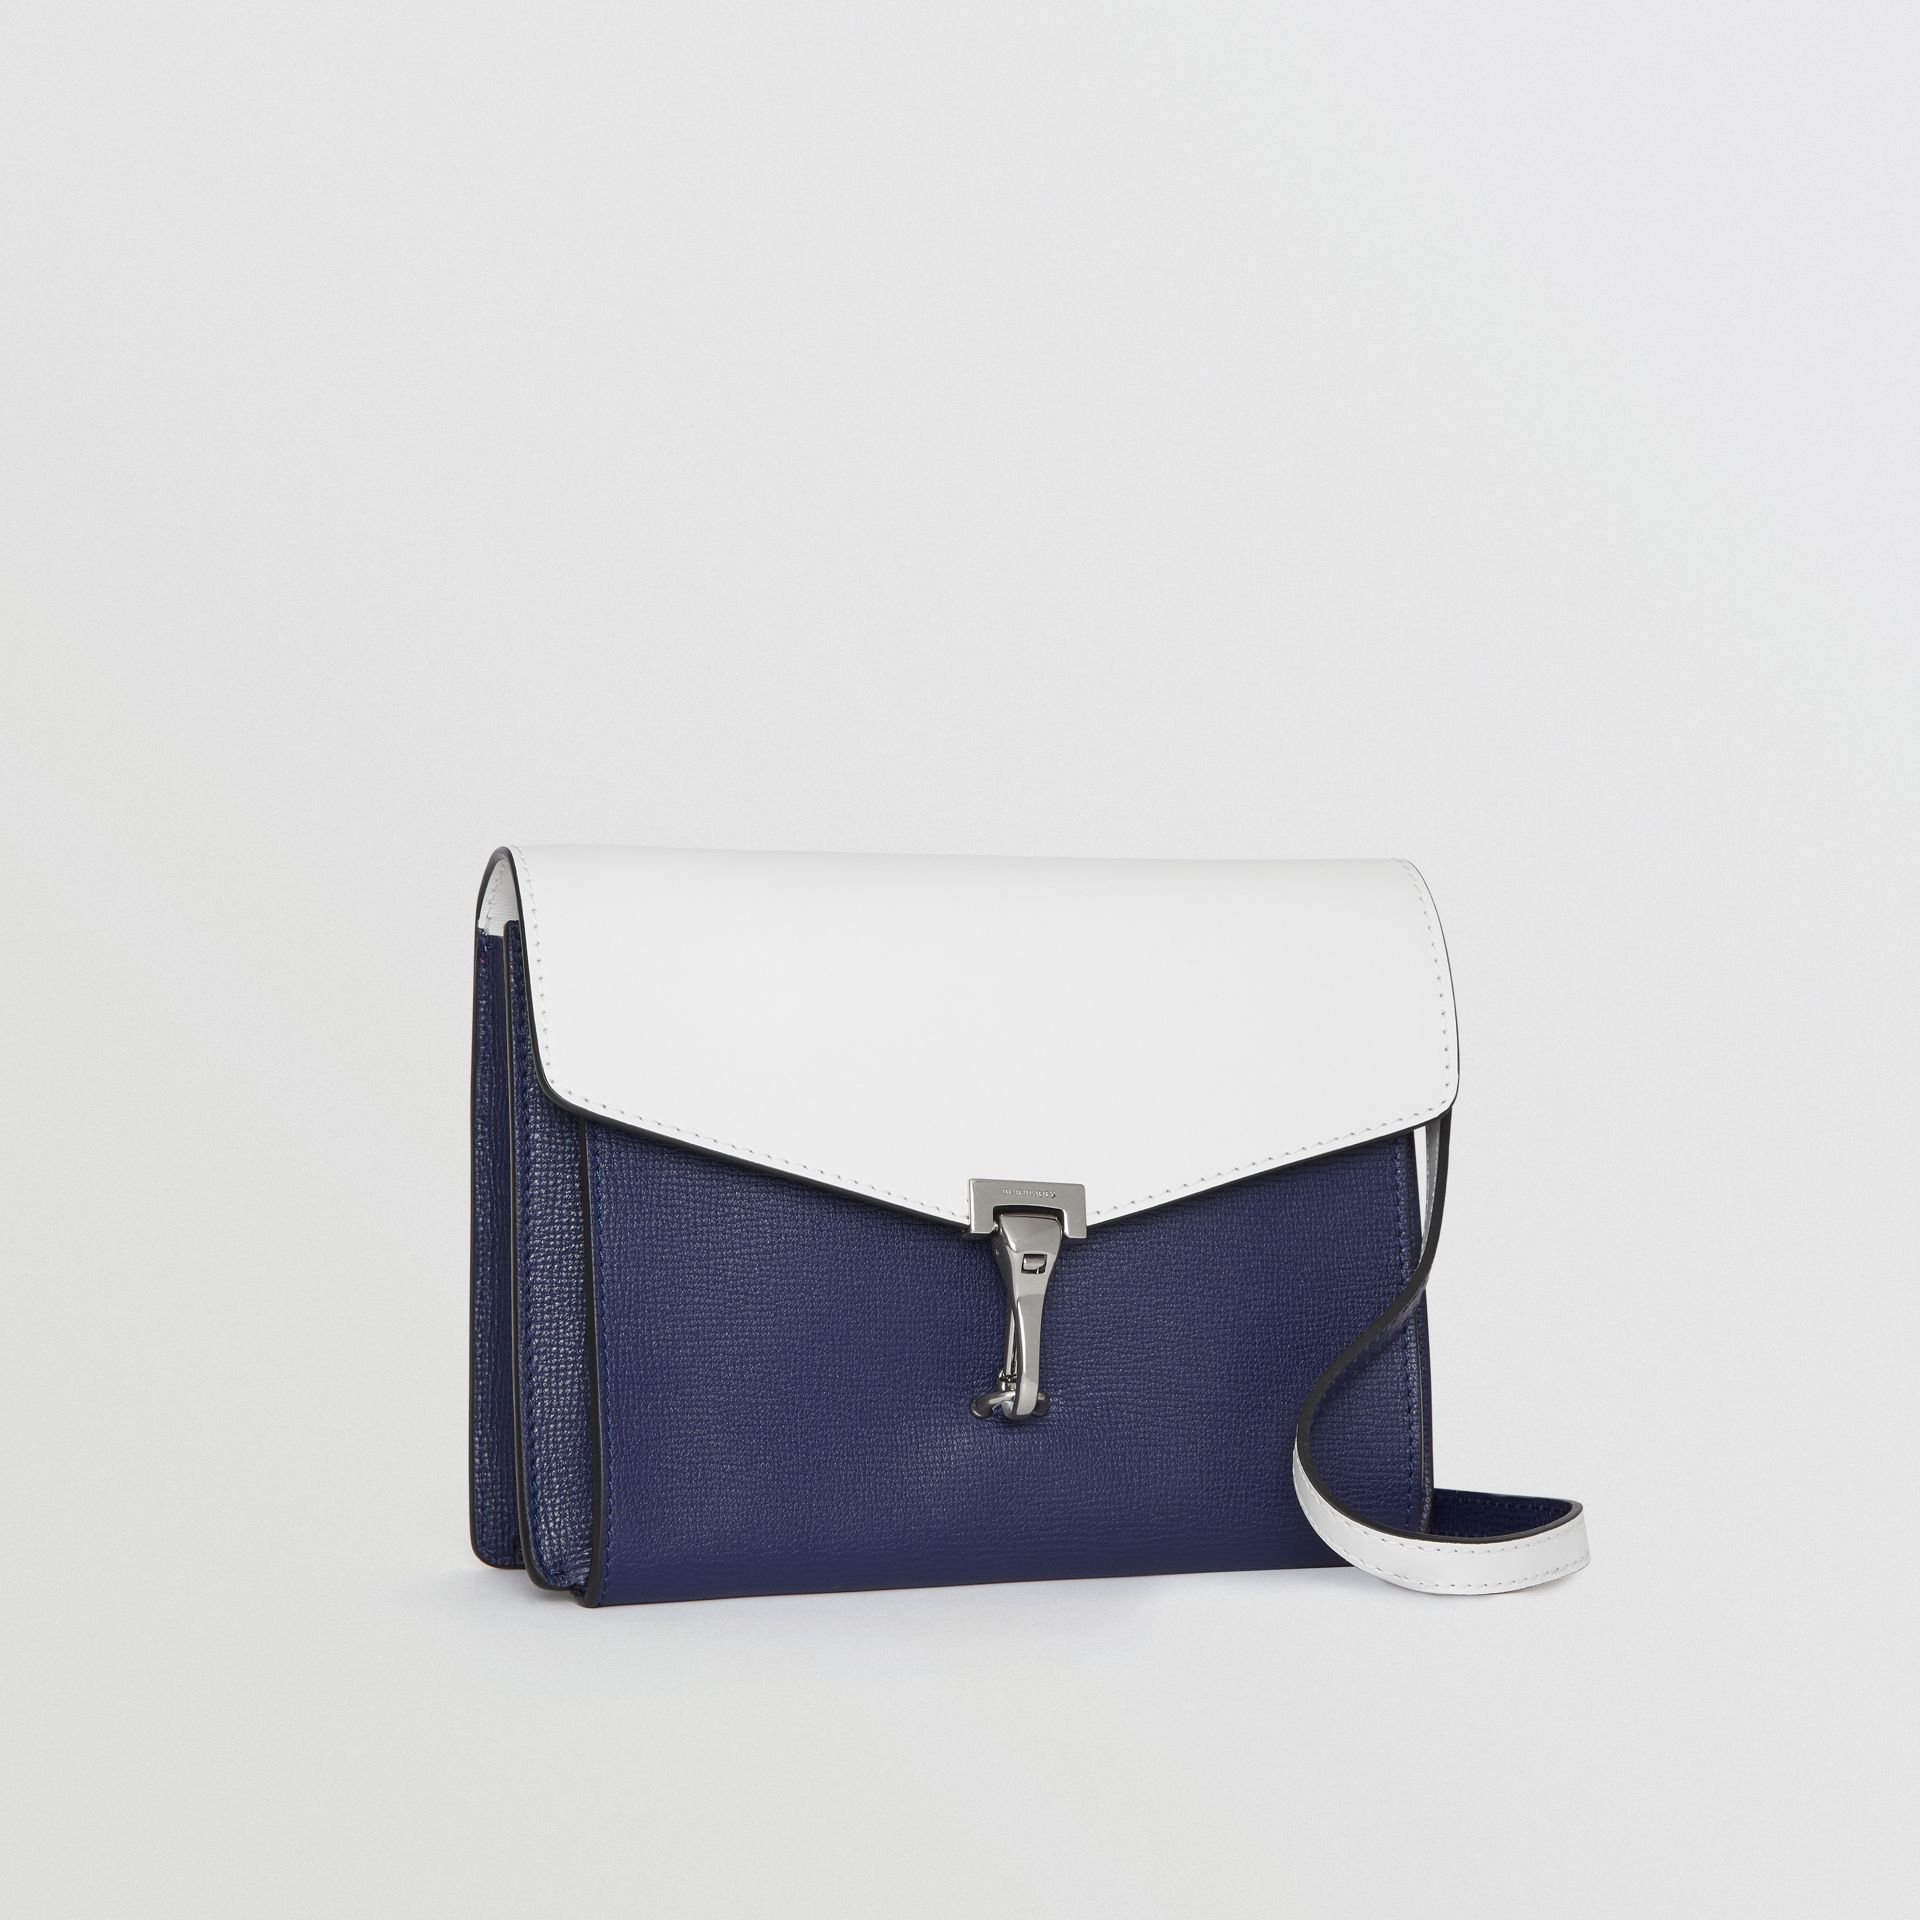 Two-tone Leather Crossbody Bag in Regency Blue/chalk White - Women | Burberry Hong Kong - gallery image 6